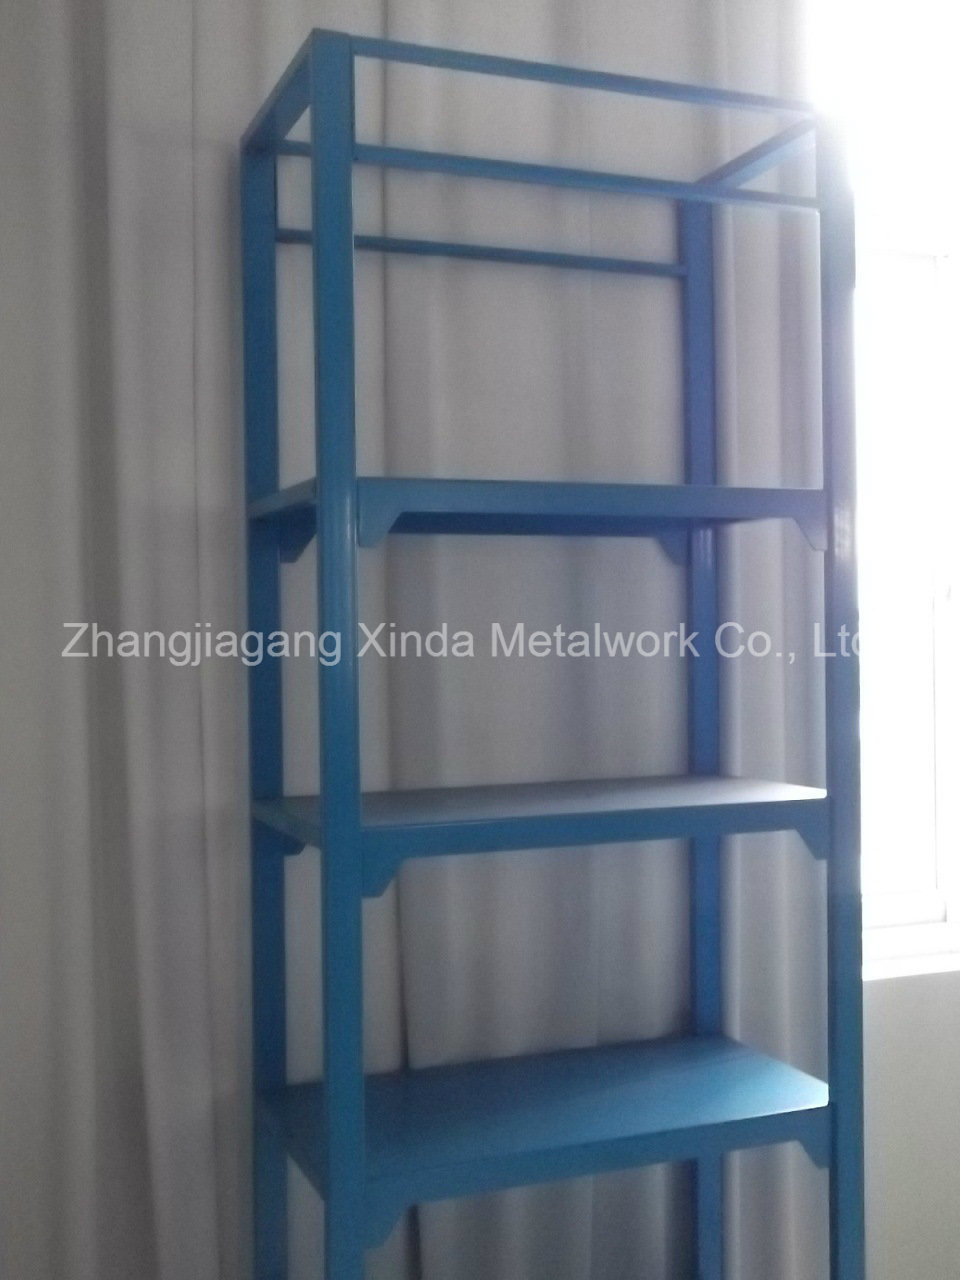 Gondola Metal Storage Display with Shelves